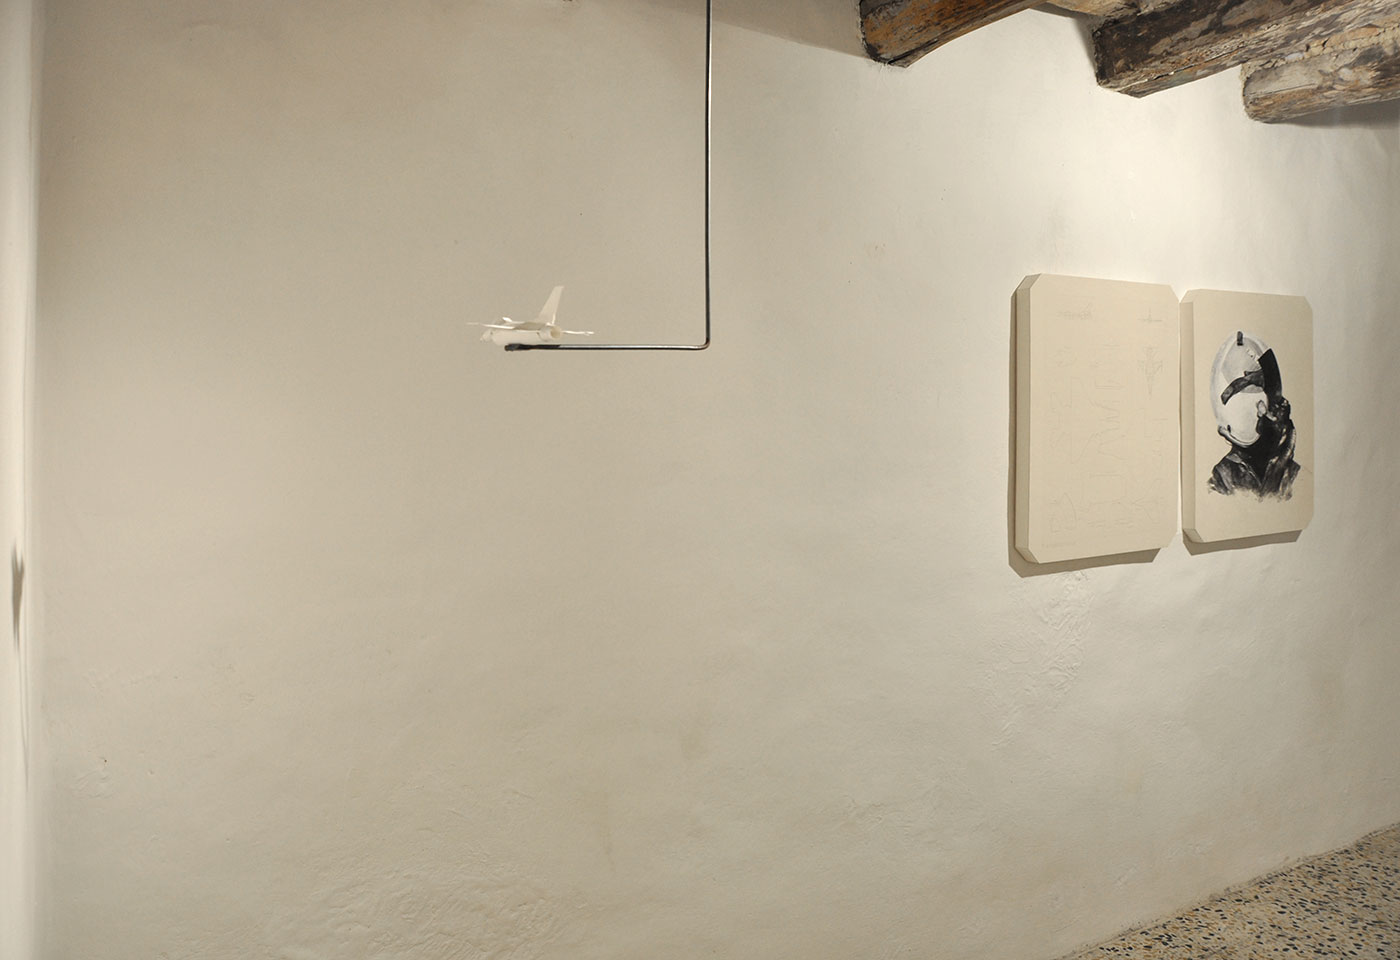 carton plant, paper, graphite, Lascod plaster, iron, glue sound equipment, mechanical mechanism. 2011